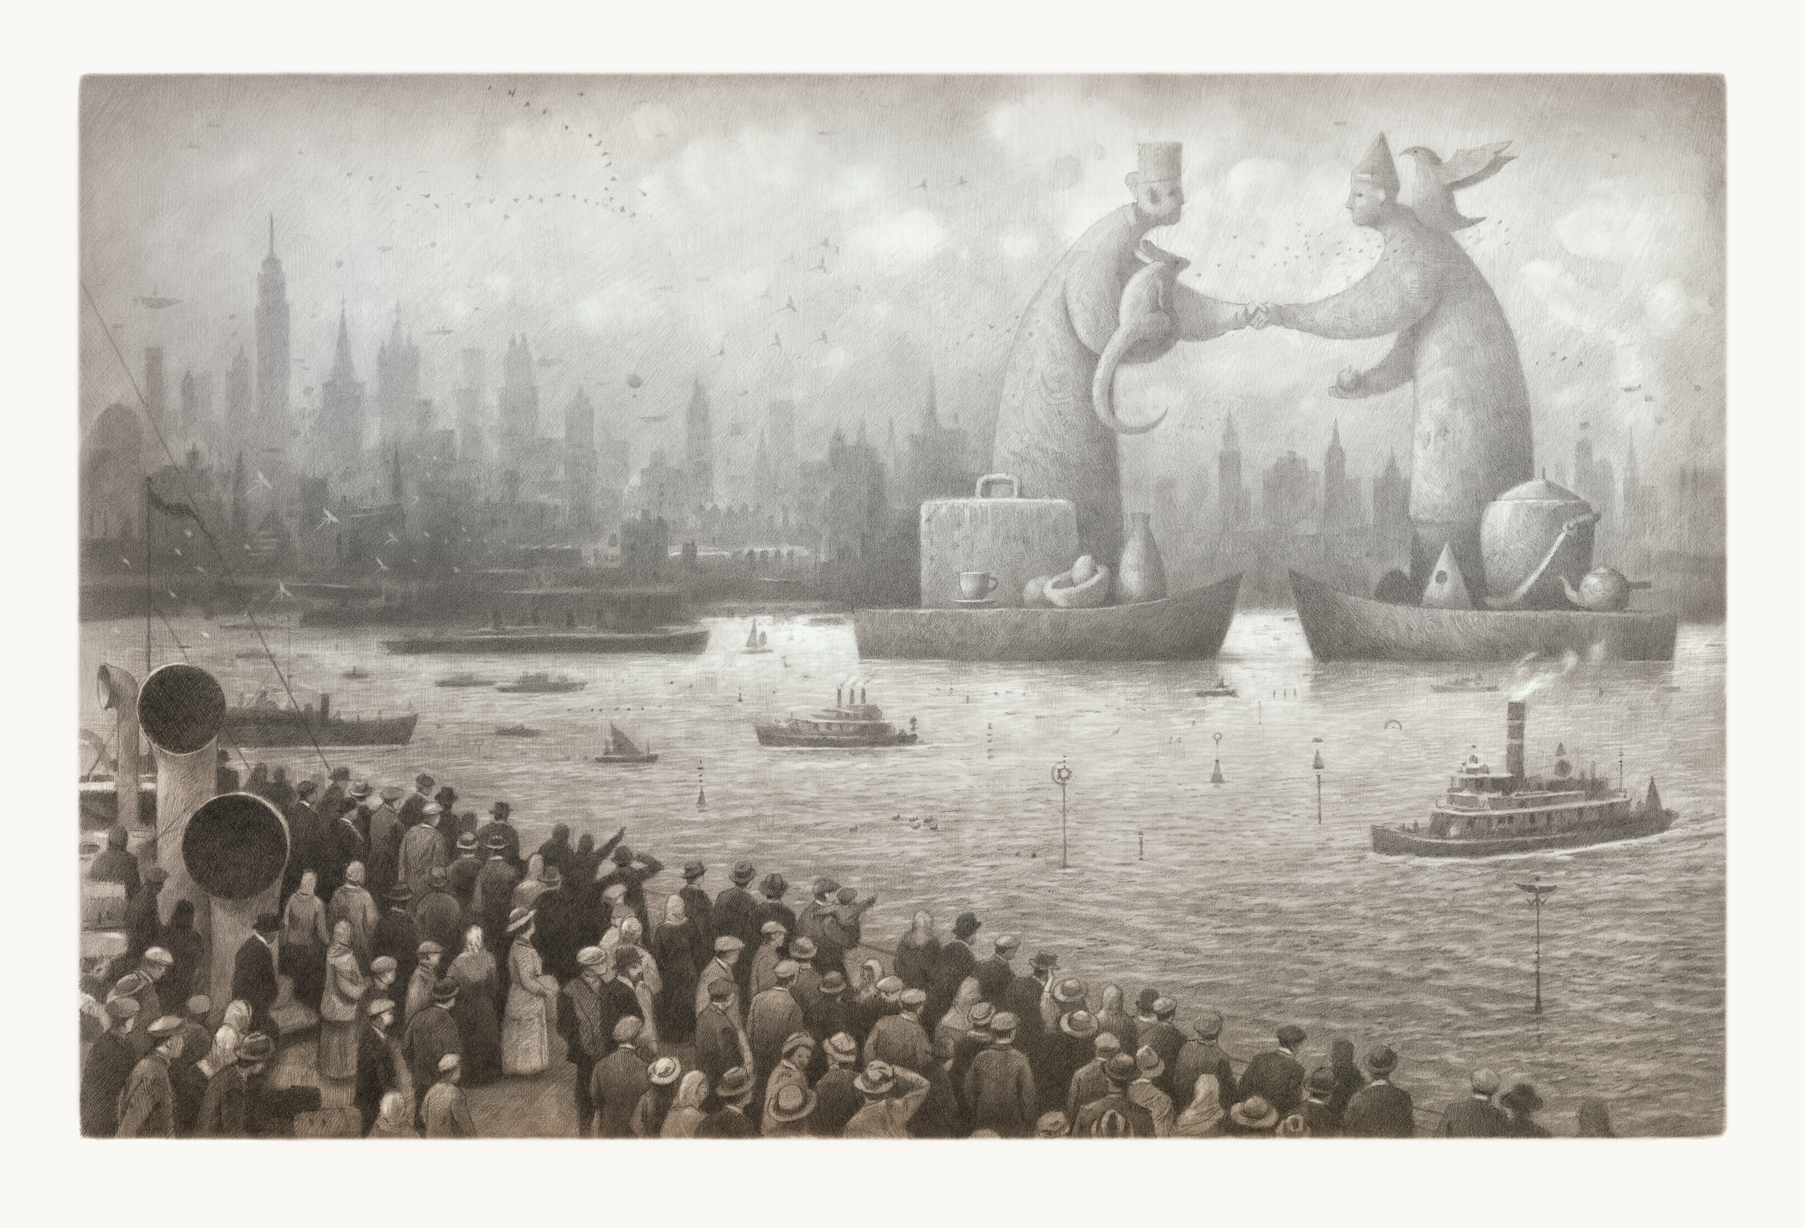 the arrival by shaun tan analysis This is shaun tan - the arrival animation by frederik vorndran on vimeo, the home for high quality videos and the people who love them.